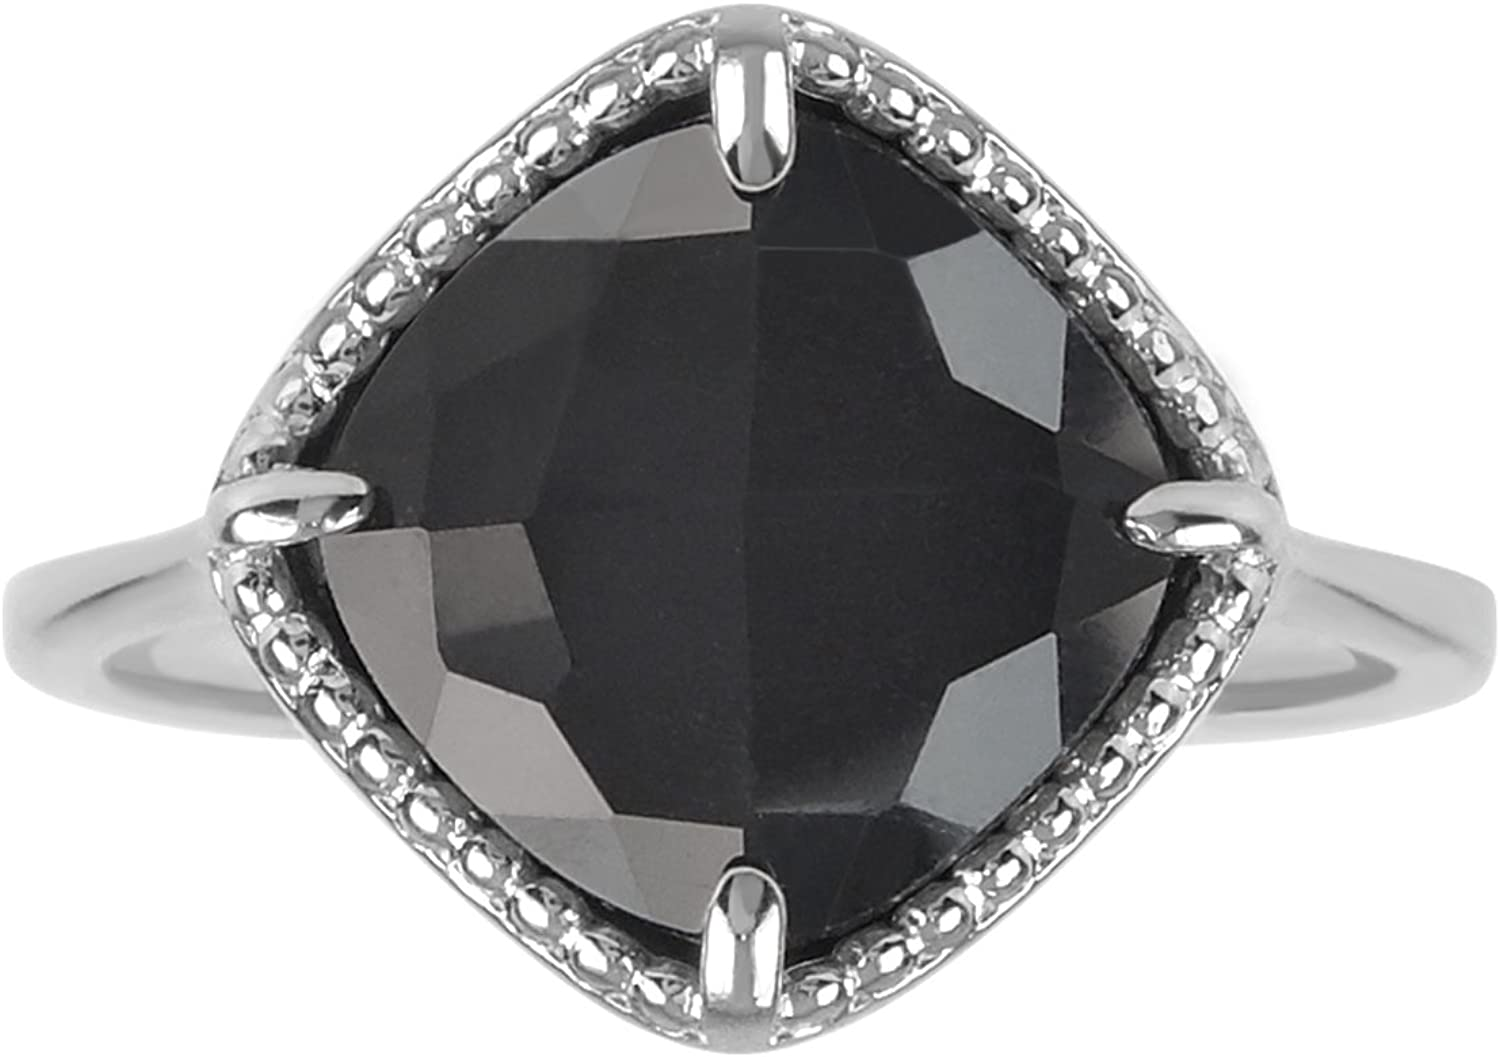 AURA BY TJM 925 STERLING SILVER CUSHION SHAPE RING SET WITH 4.12 CTW, CHECKERBOARD CUT CRYSTAL & HEMATITE DOUBLET